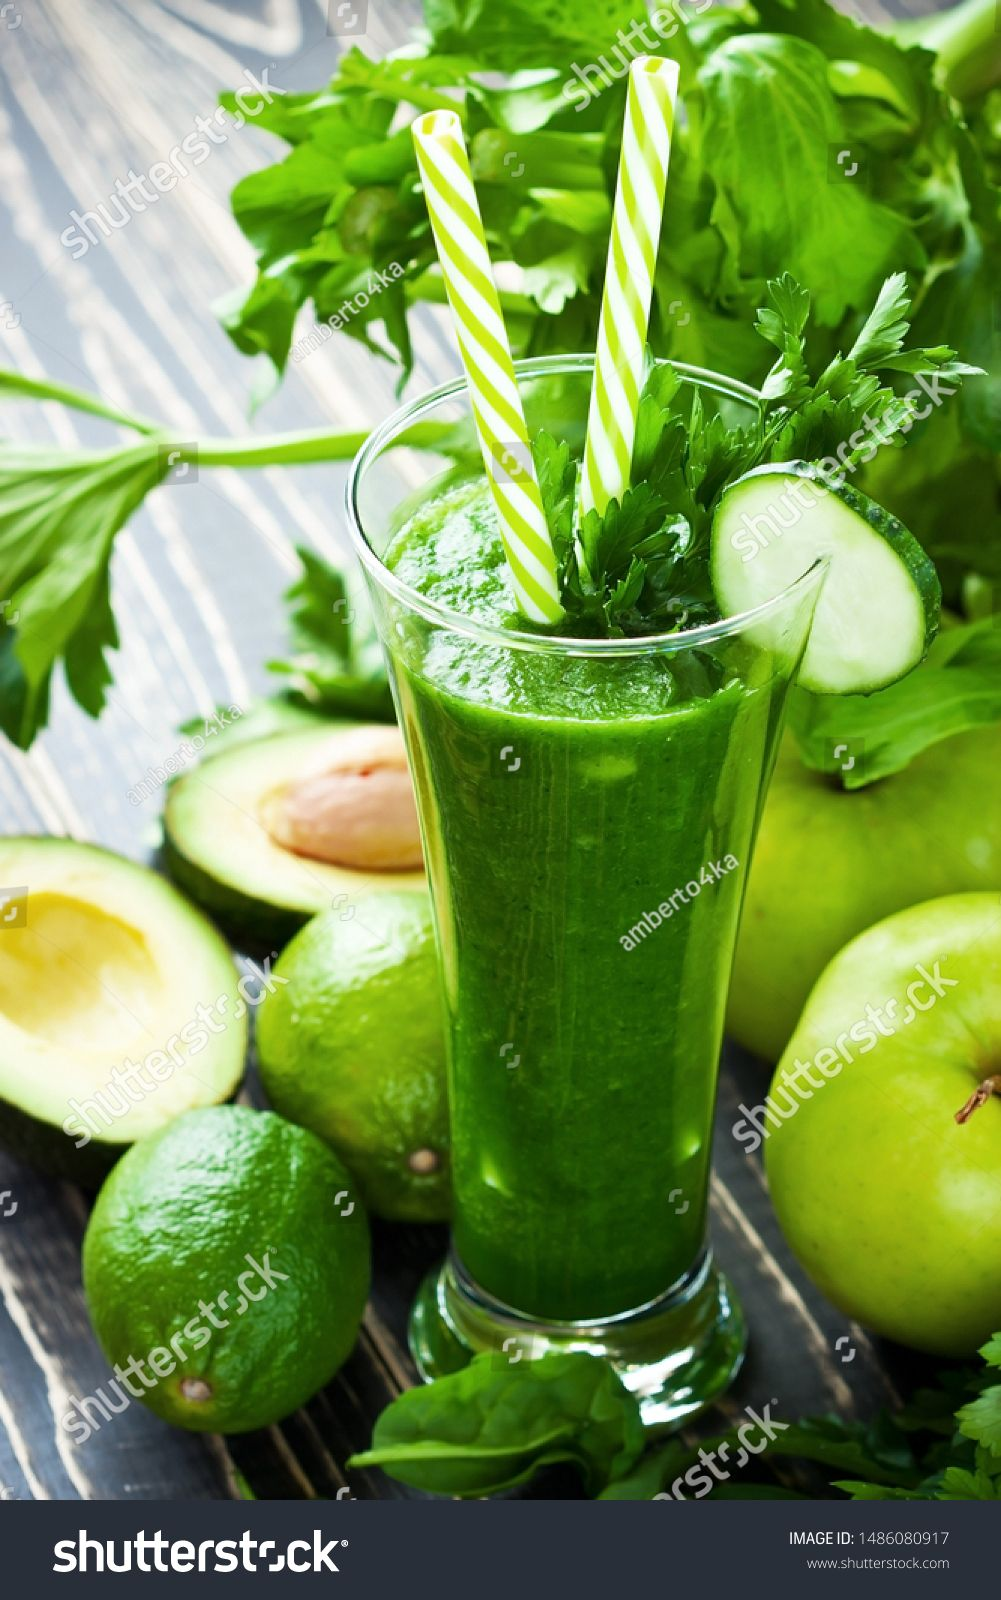 Green detox smoothie with avocado, cucumber, spinach and fresh greens. Healthy eating, weight loss and dieting concept, selective focus with shallow depth of field #Sponsored , #ad, #fresh#spinach#Healthy#greens